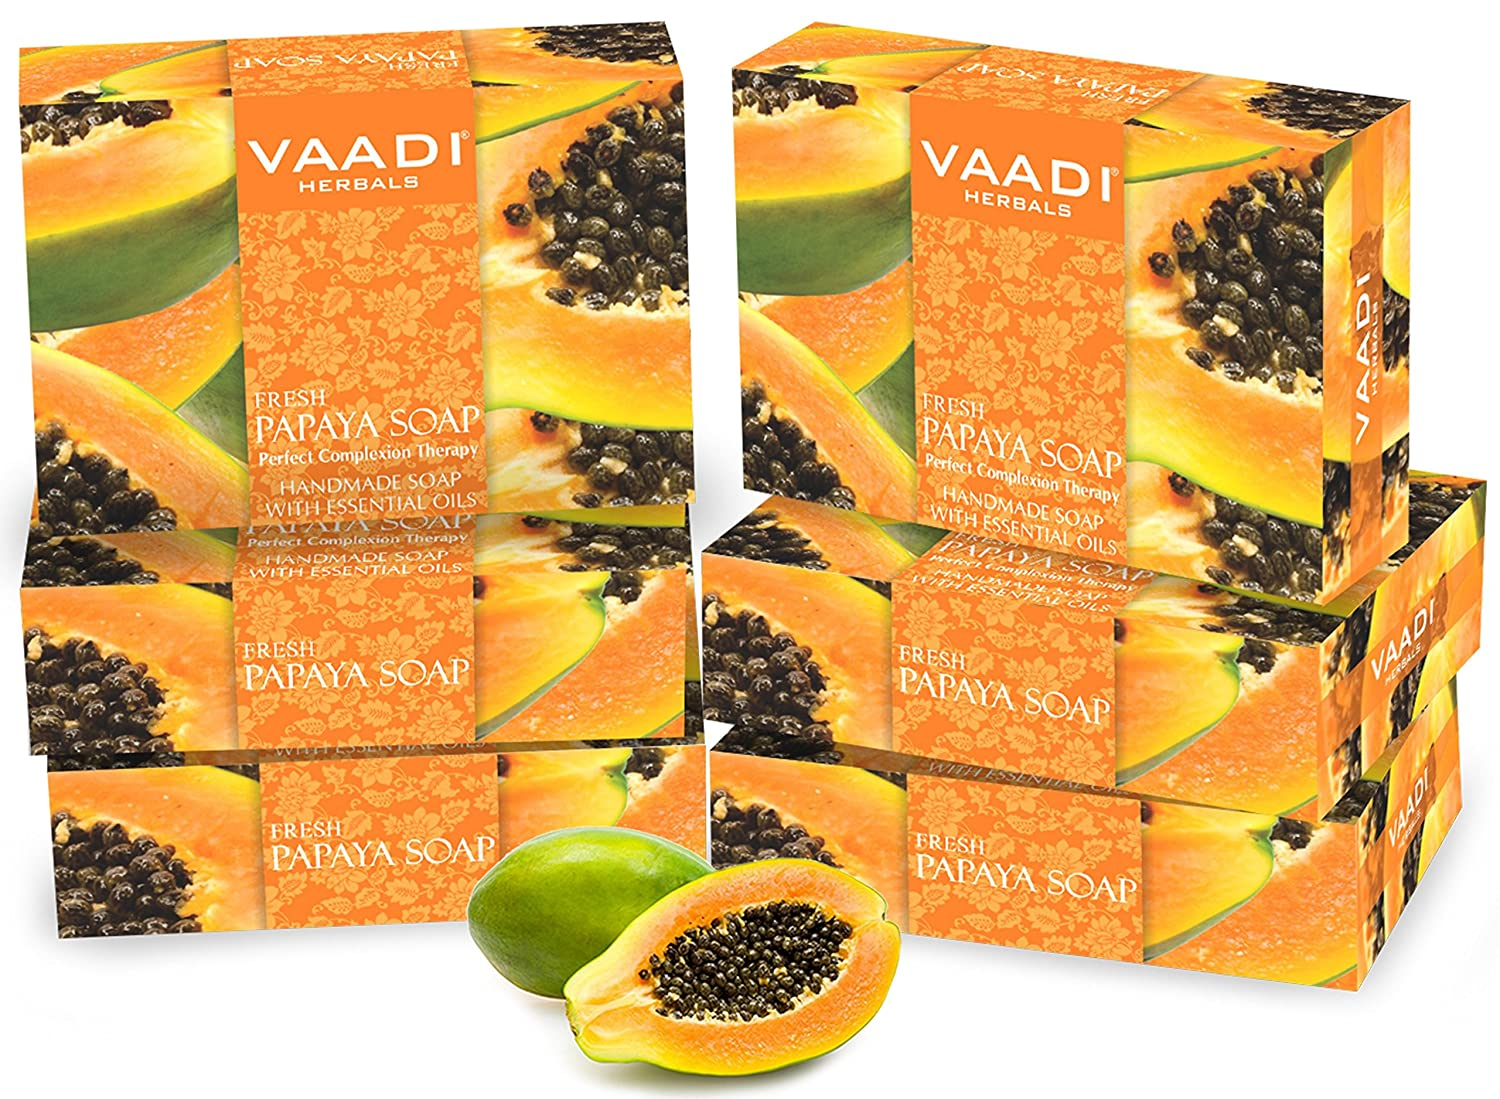 Value Pack of 6 Natural Fresh Papaya Soap (75 gms x 6) Anti-Acne - Oil Control - Skin Lightening Soap - Deep Moisturiser Smooth Face Body- Reduce Dark Spot ...